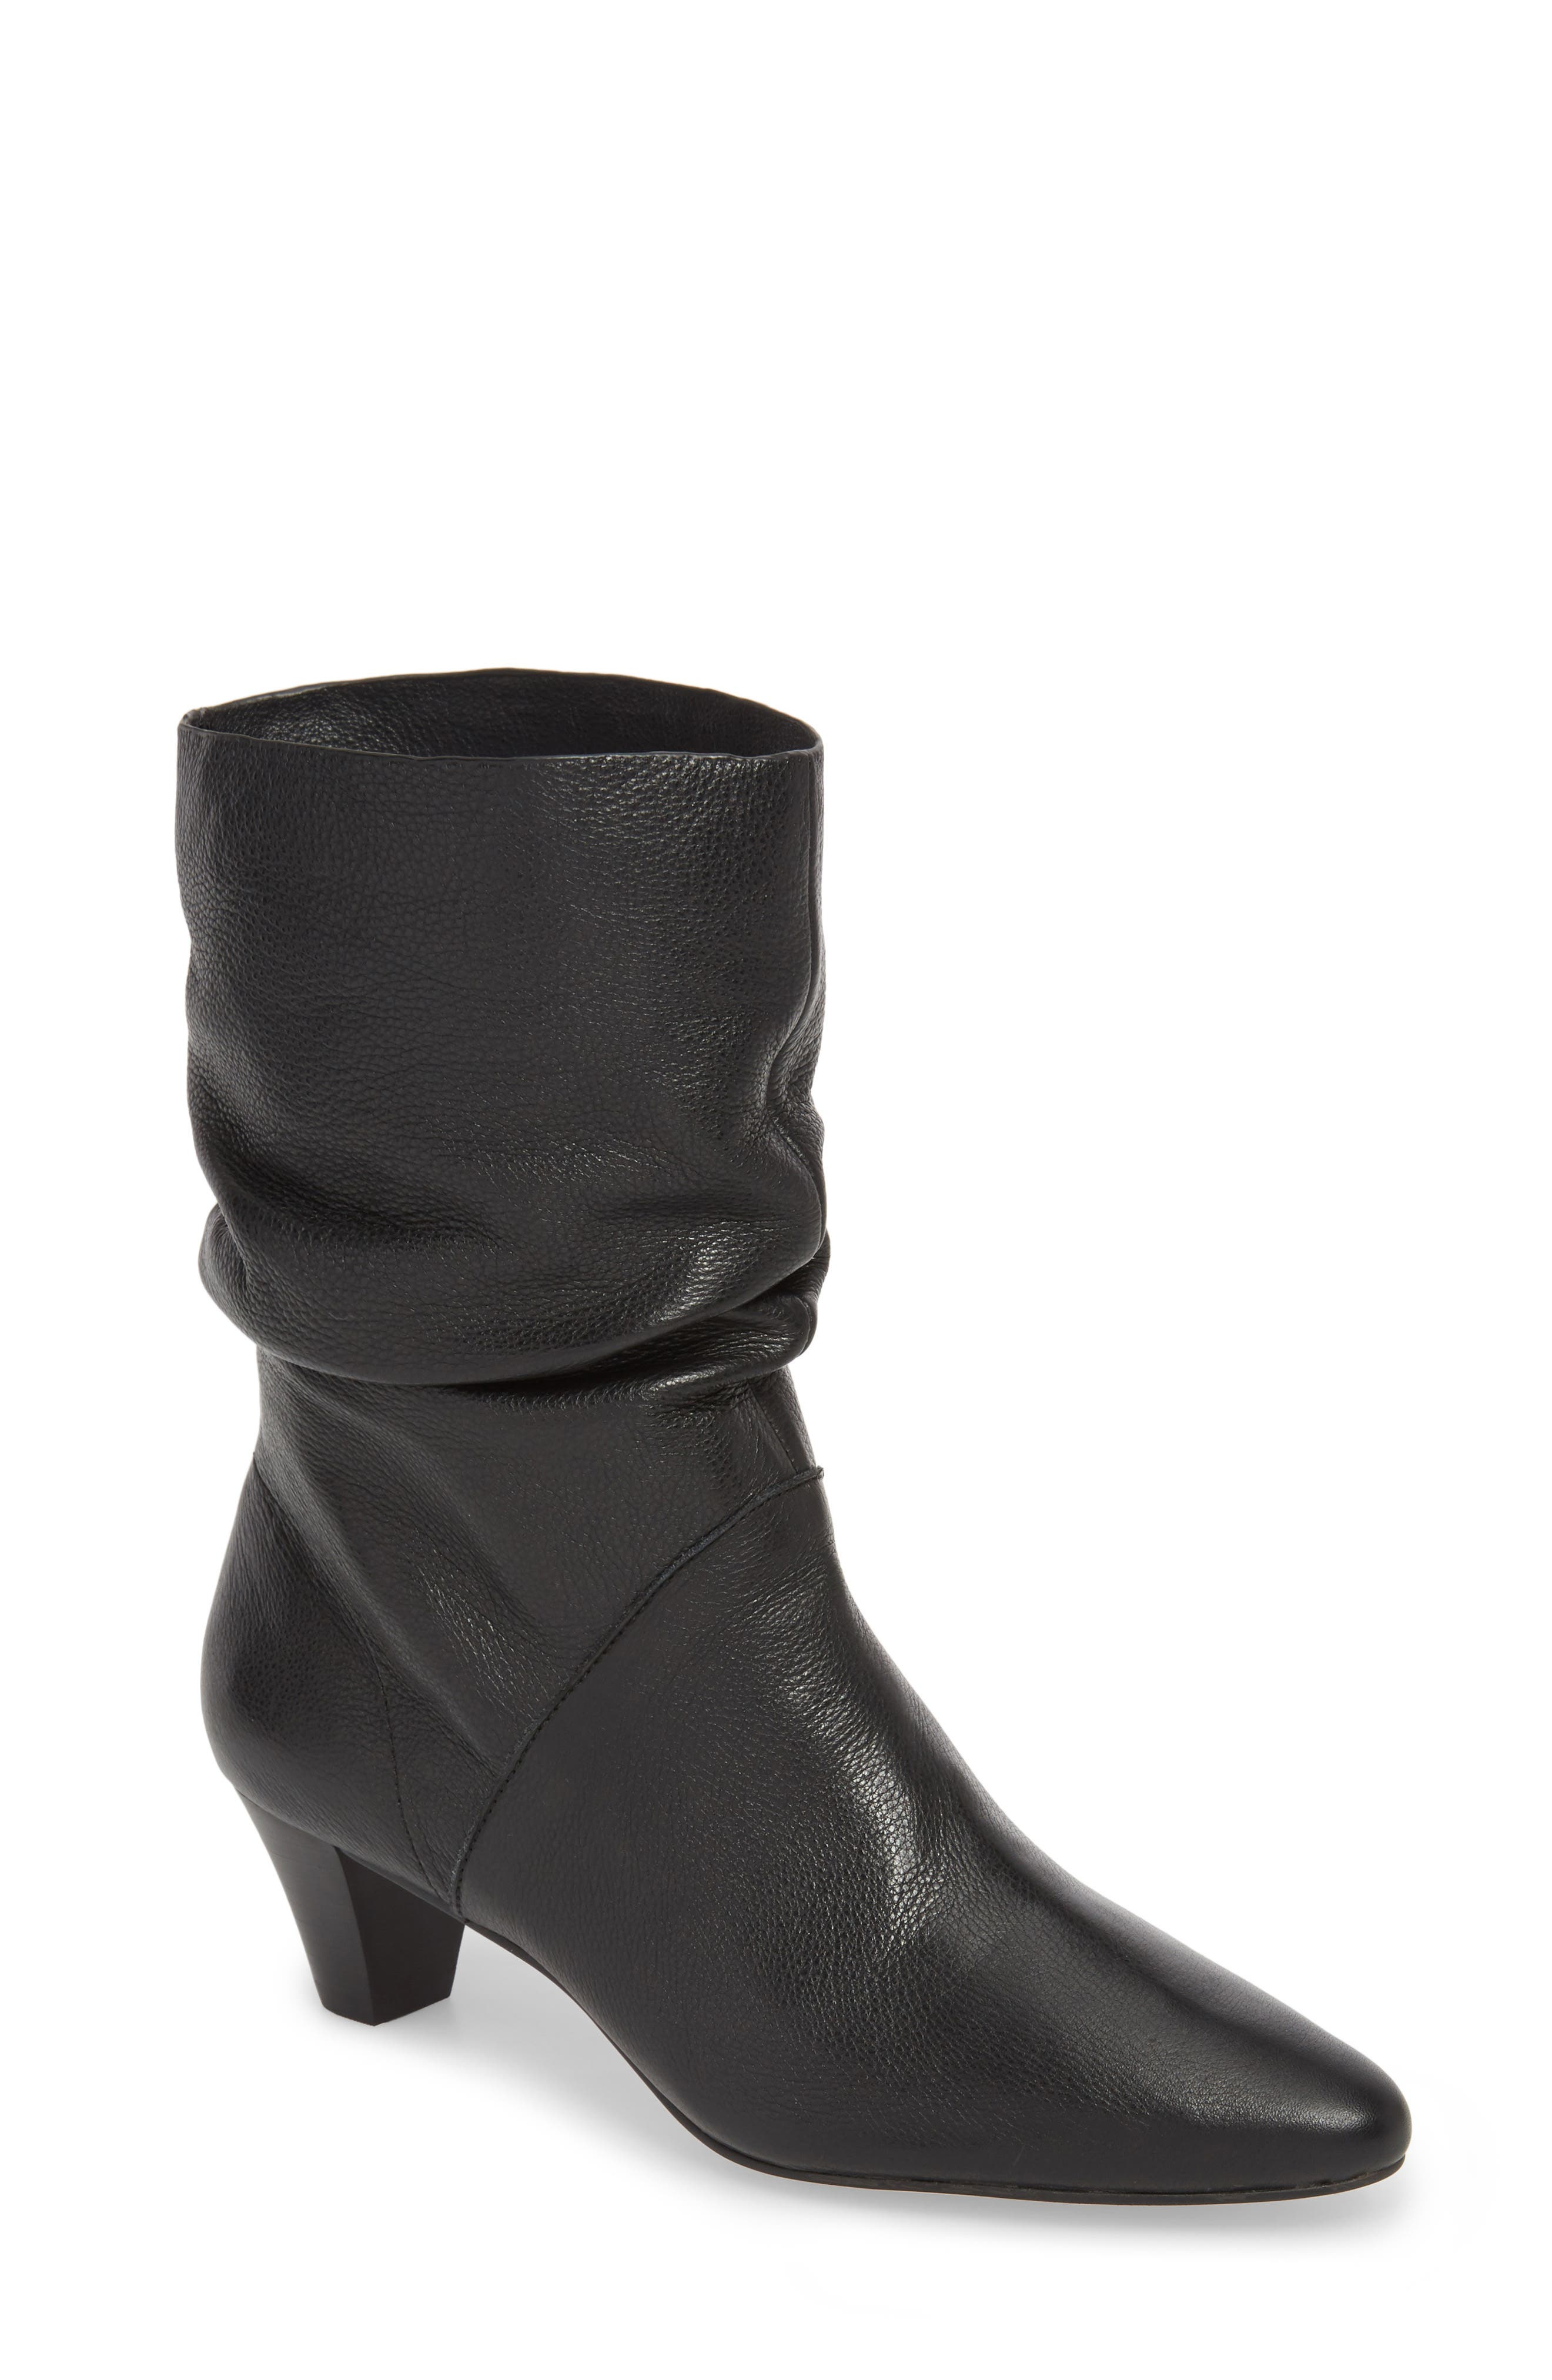 Sale alerts for  Nica Slouchy Boot - Covvet